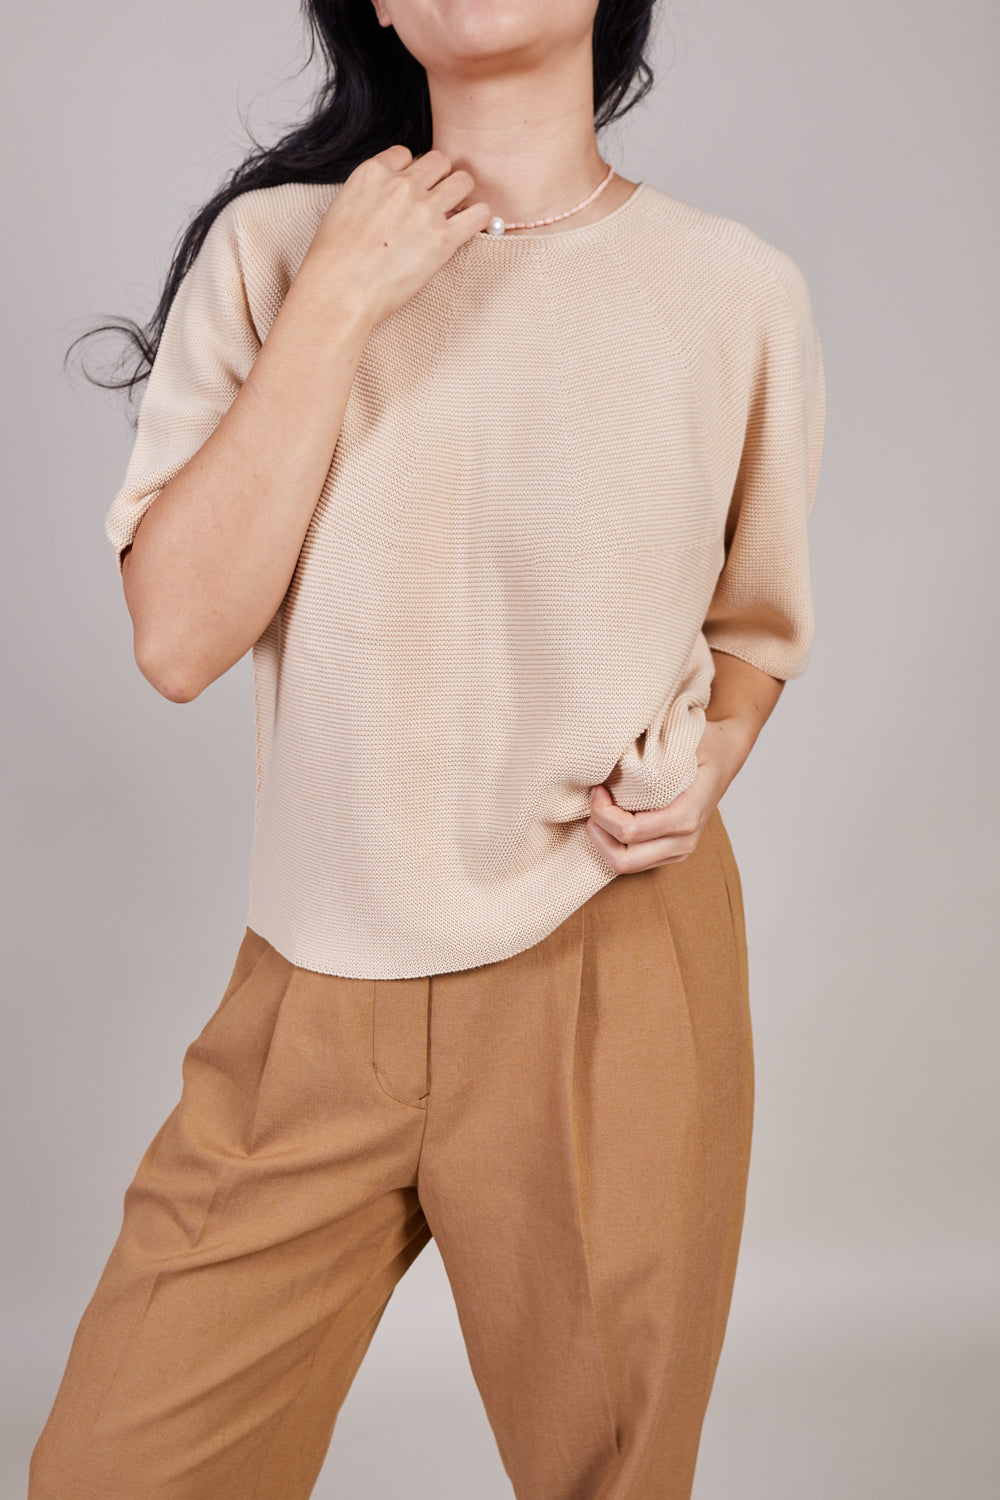 Koda Blouse in Beige